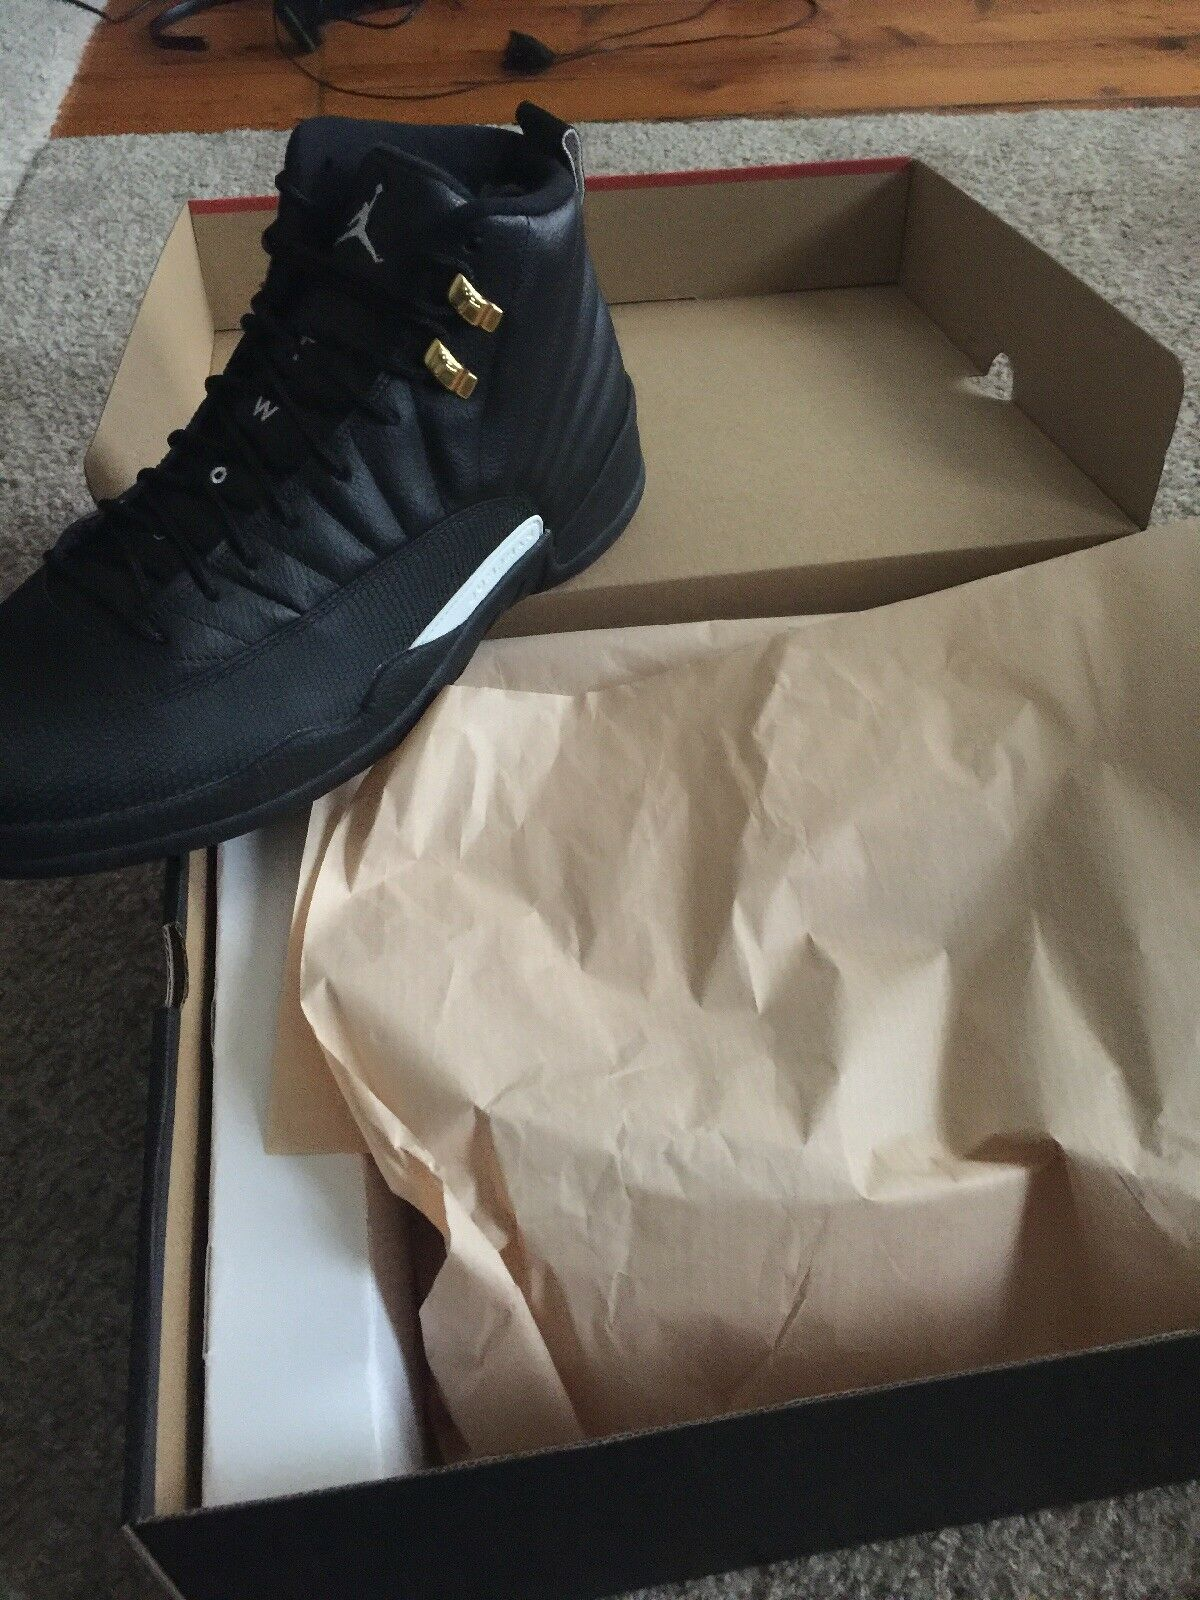 Jordan Retro 12  The Master  Size 11.5- New In Box-Never Worn w Receipt